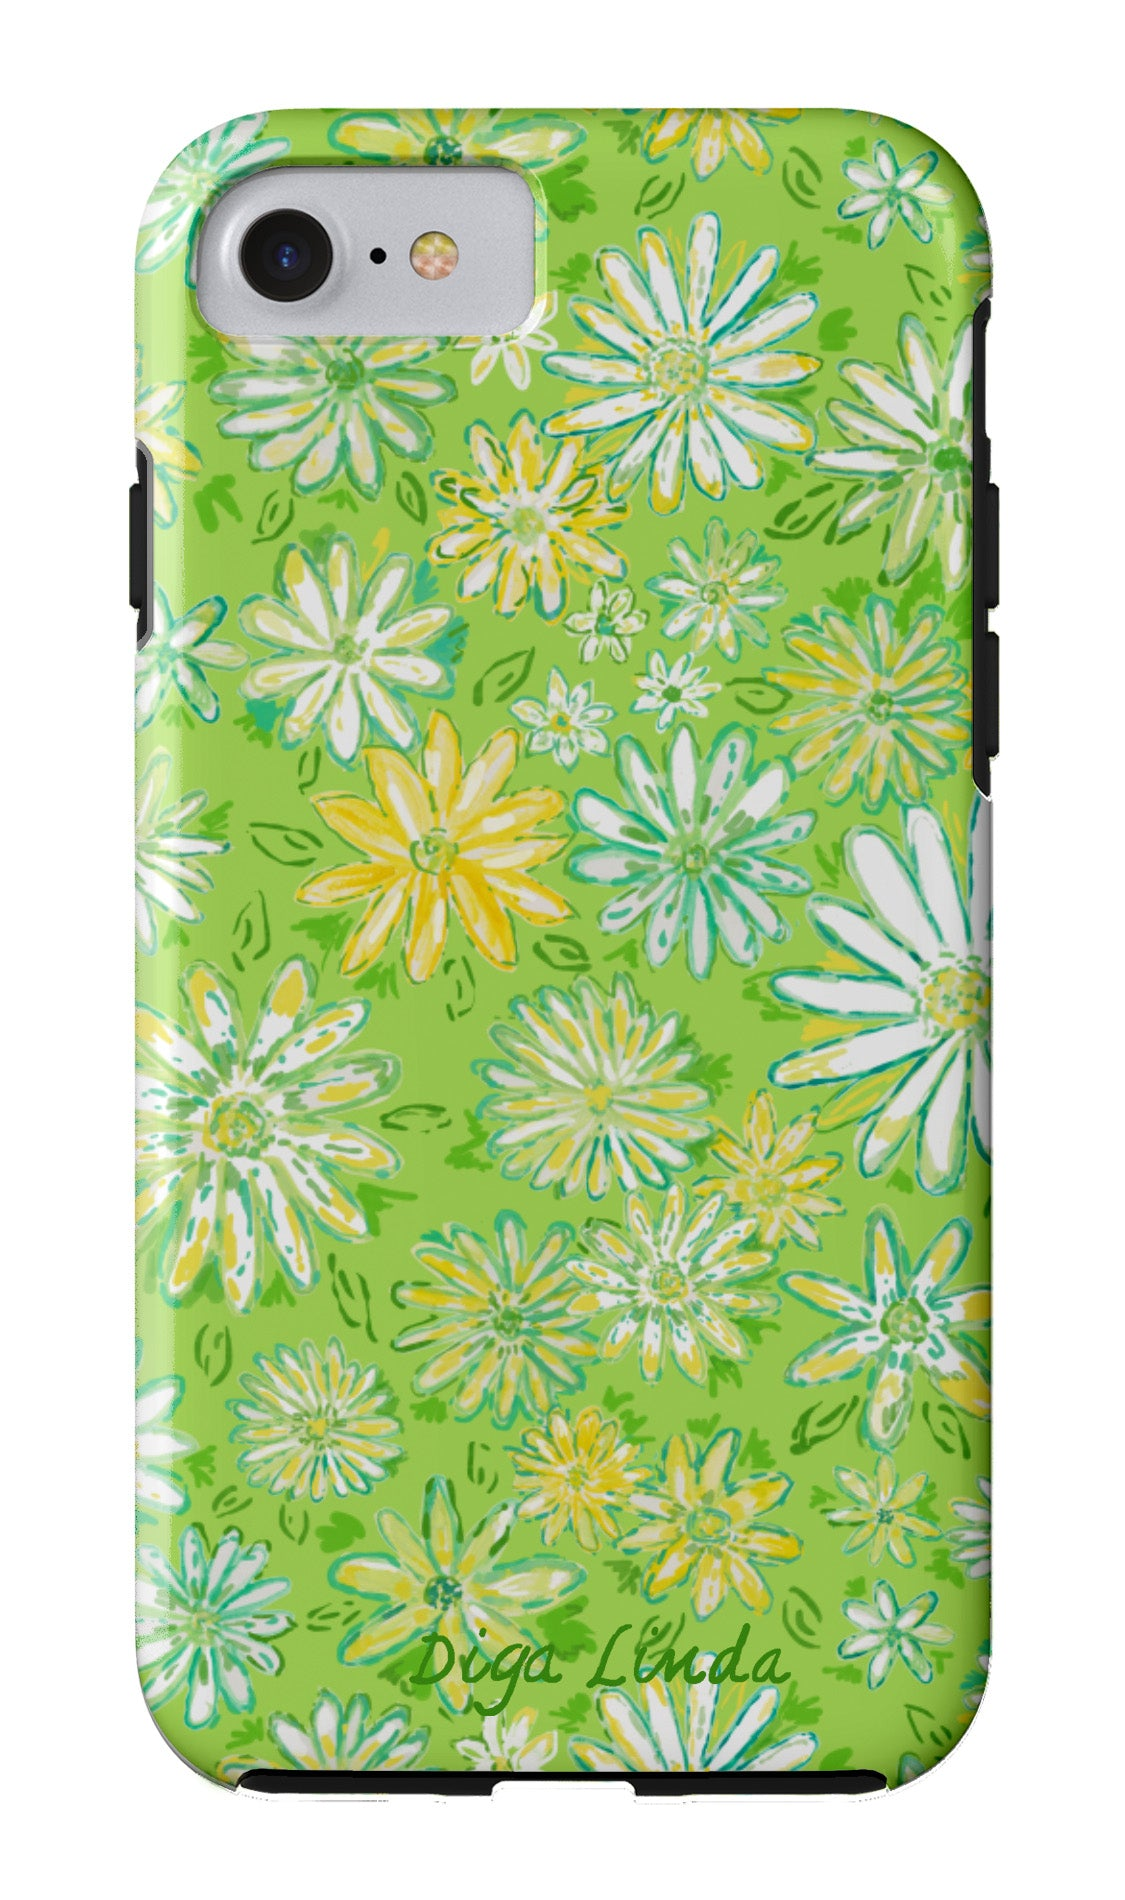 Wild Daisies Tough Phone Case - Diga Linda